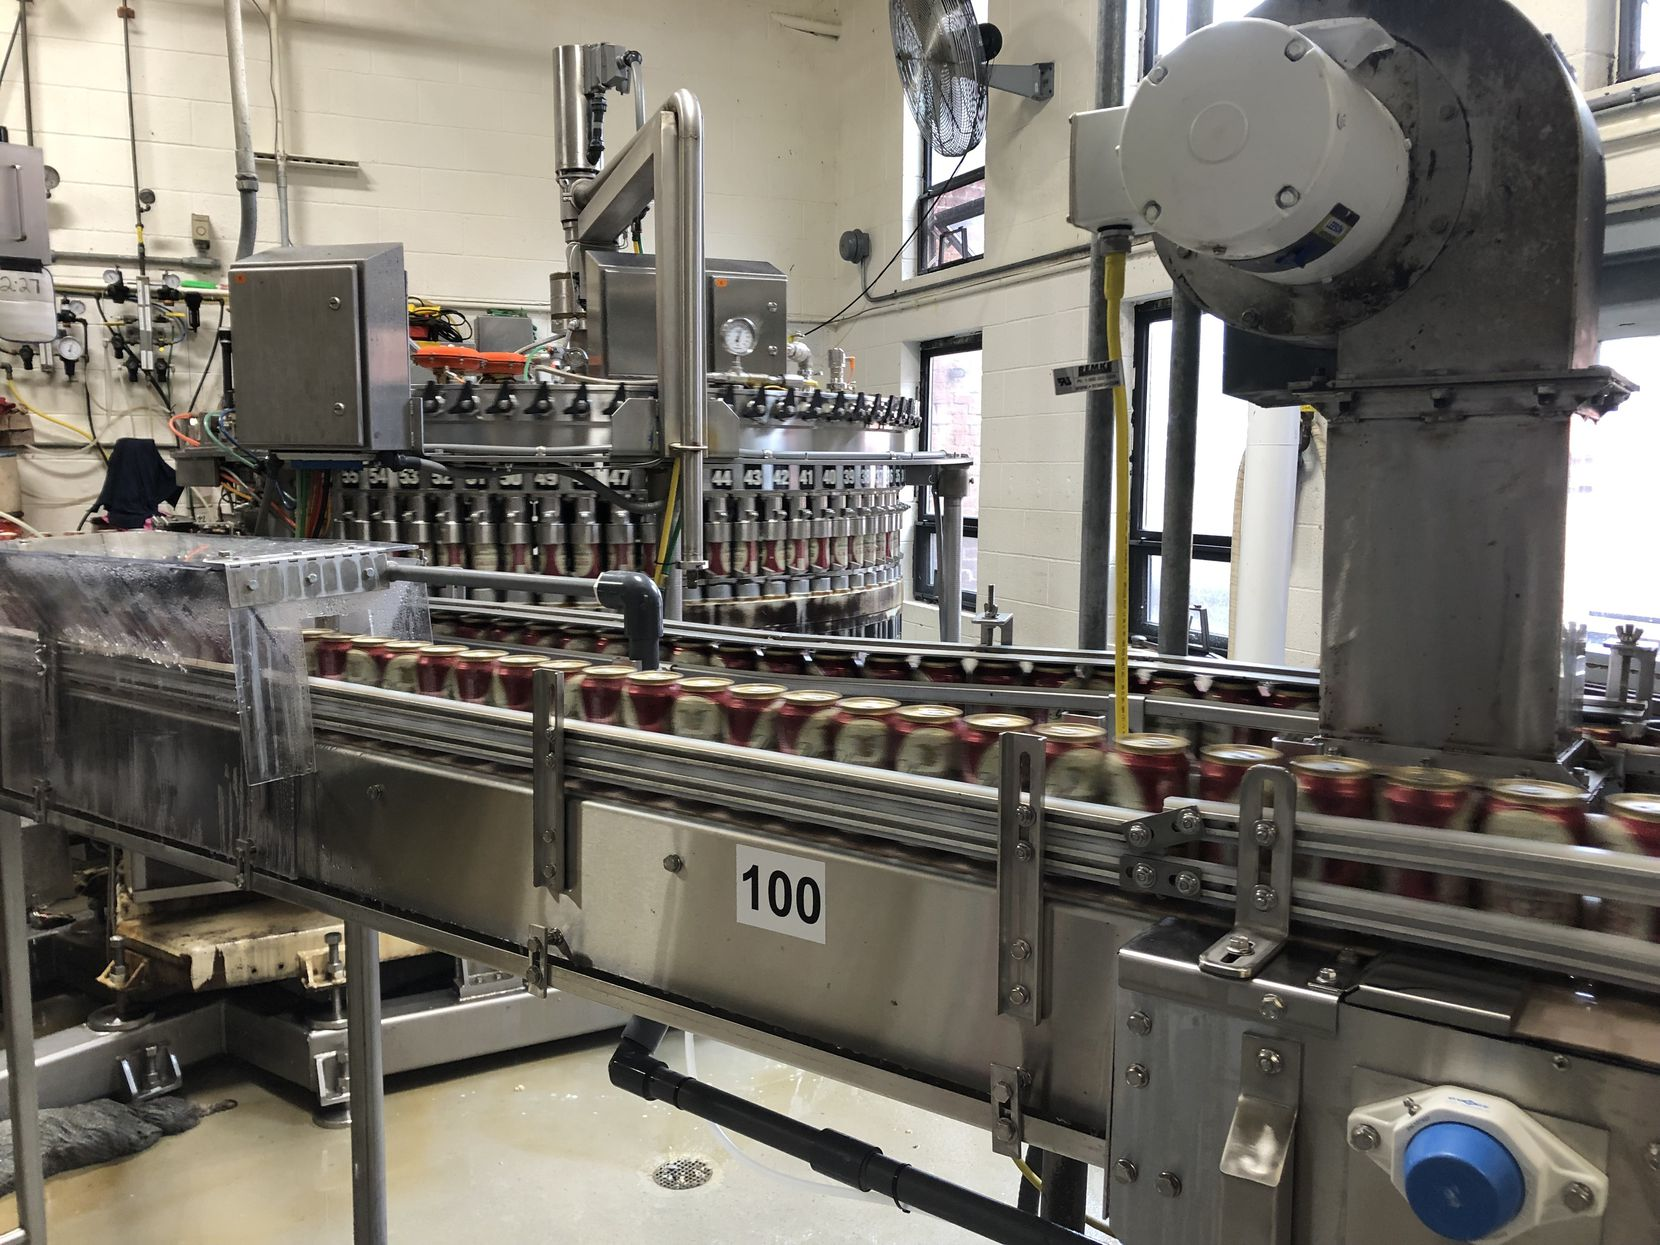 An up-close view of the canning line in action is a highlight of the brewery tour. (Leslie Snyder)